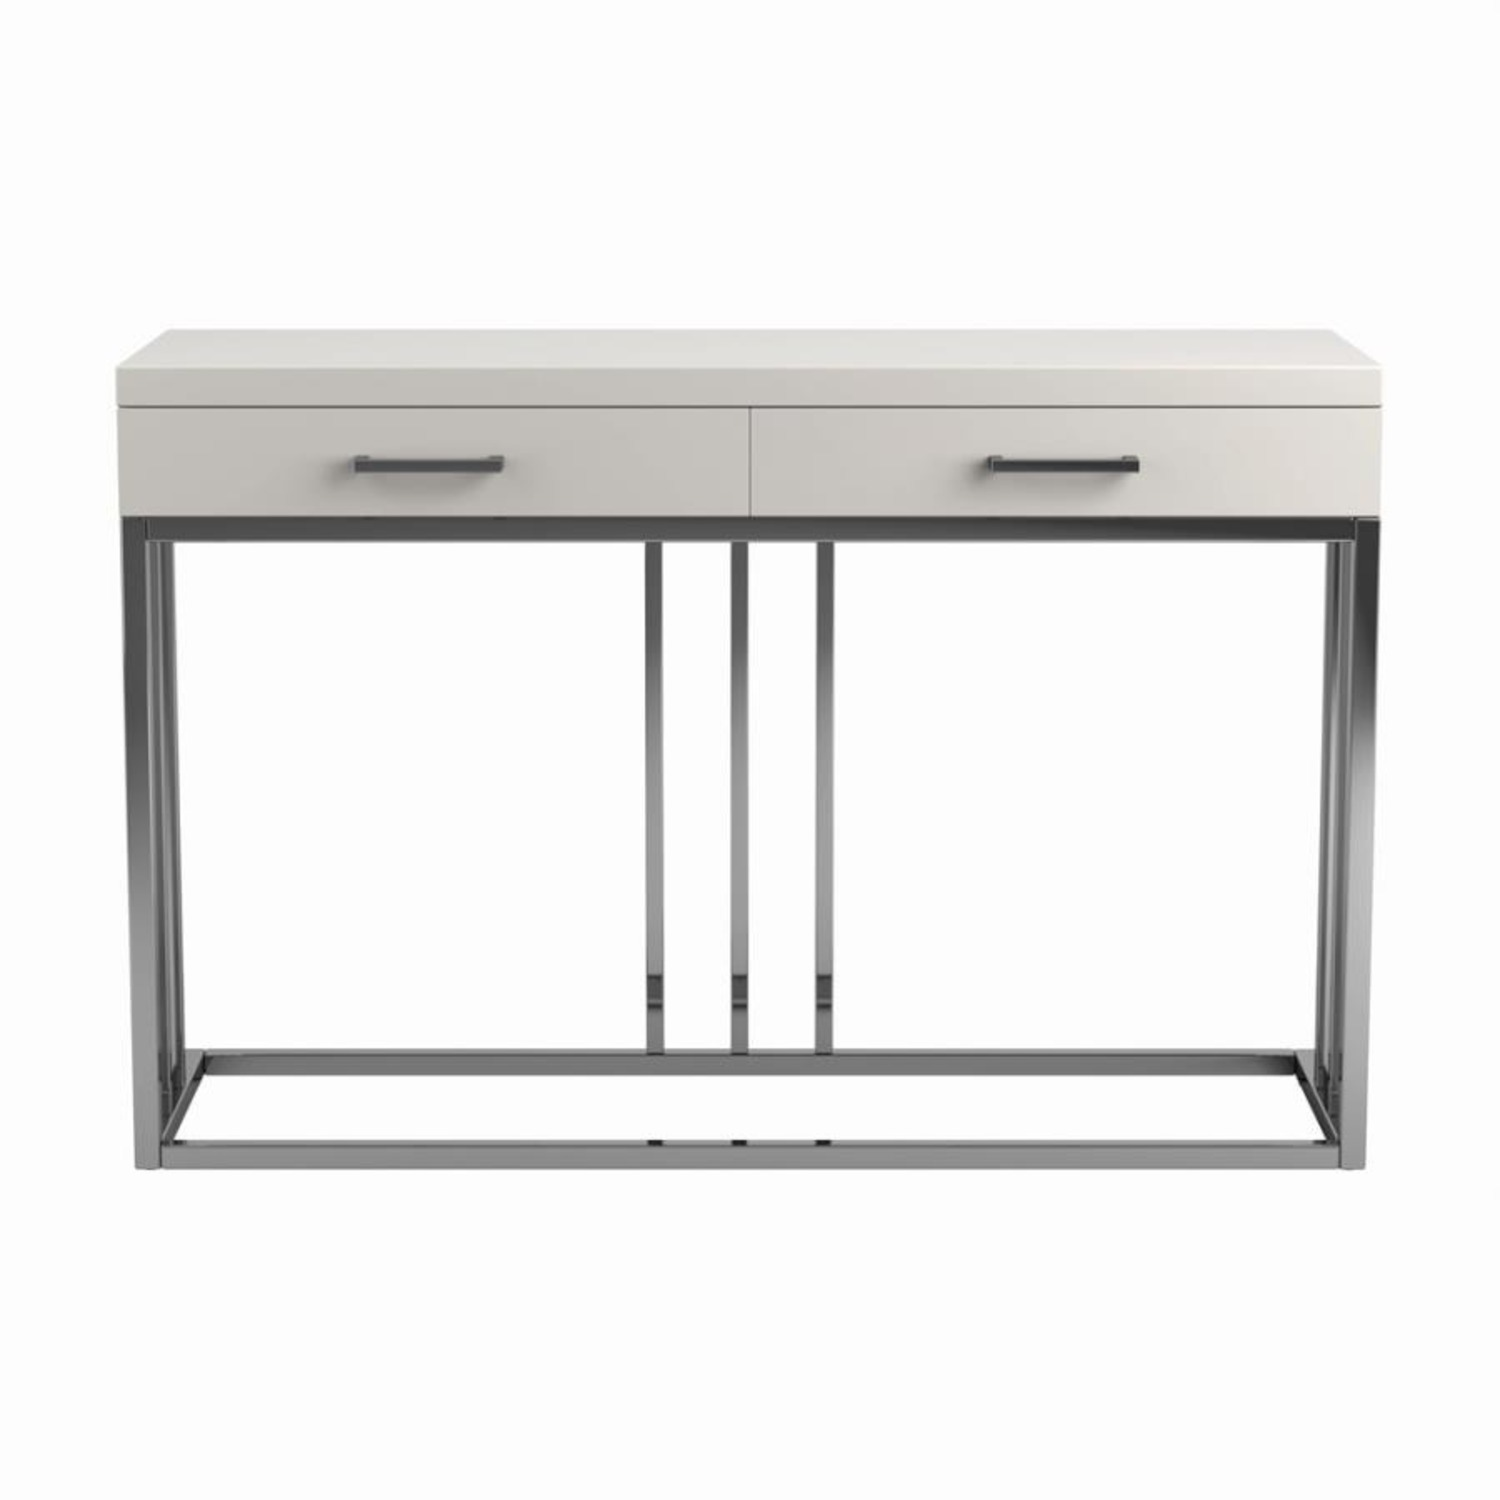 Sofa Table In Modern Linear Design - image-2